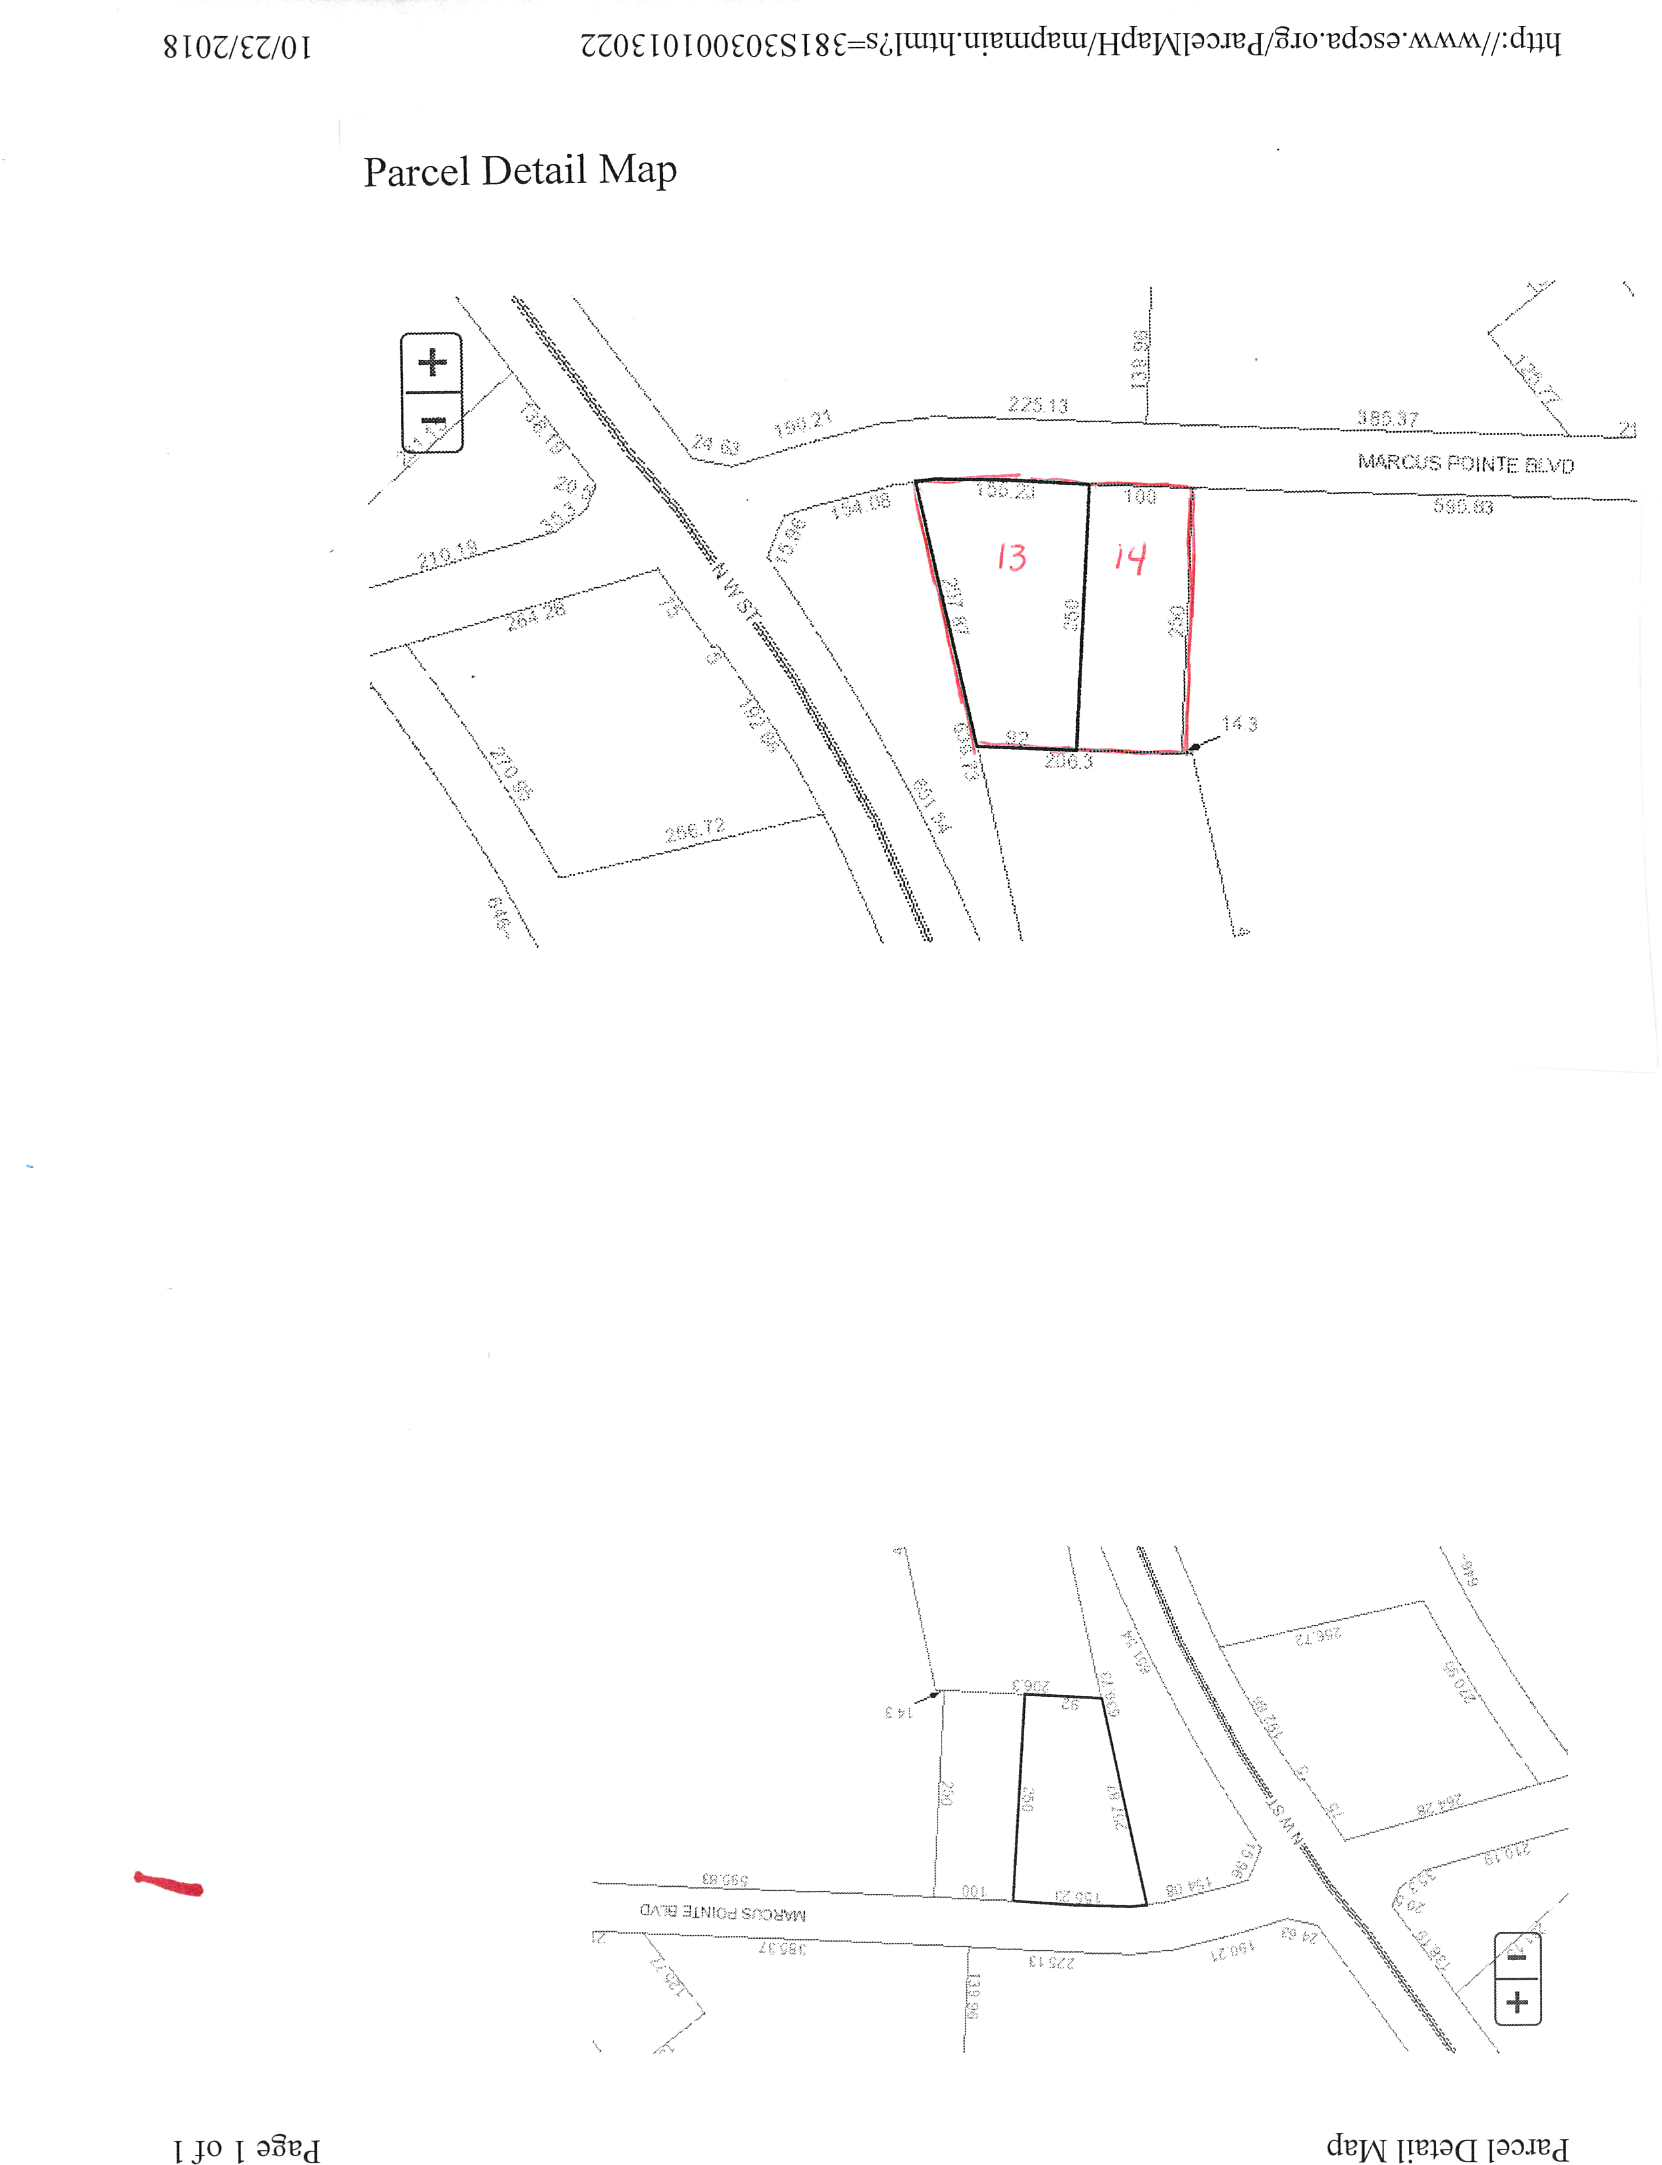 2 parcels of vacant land with total of 1.28 acres